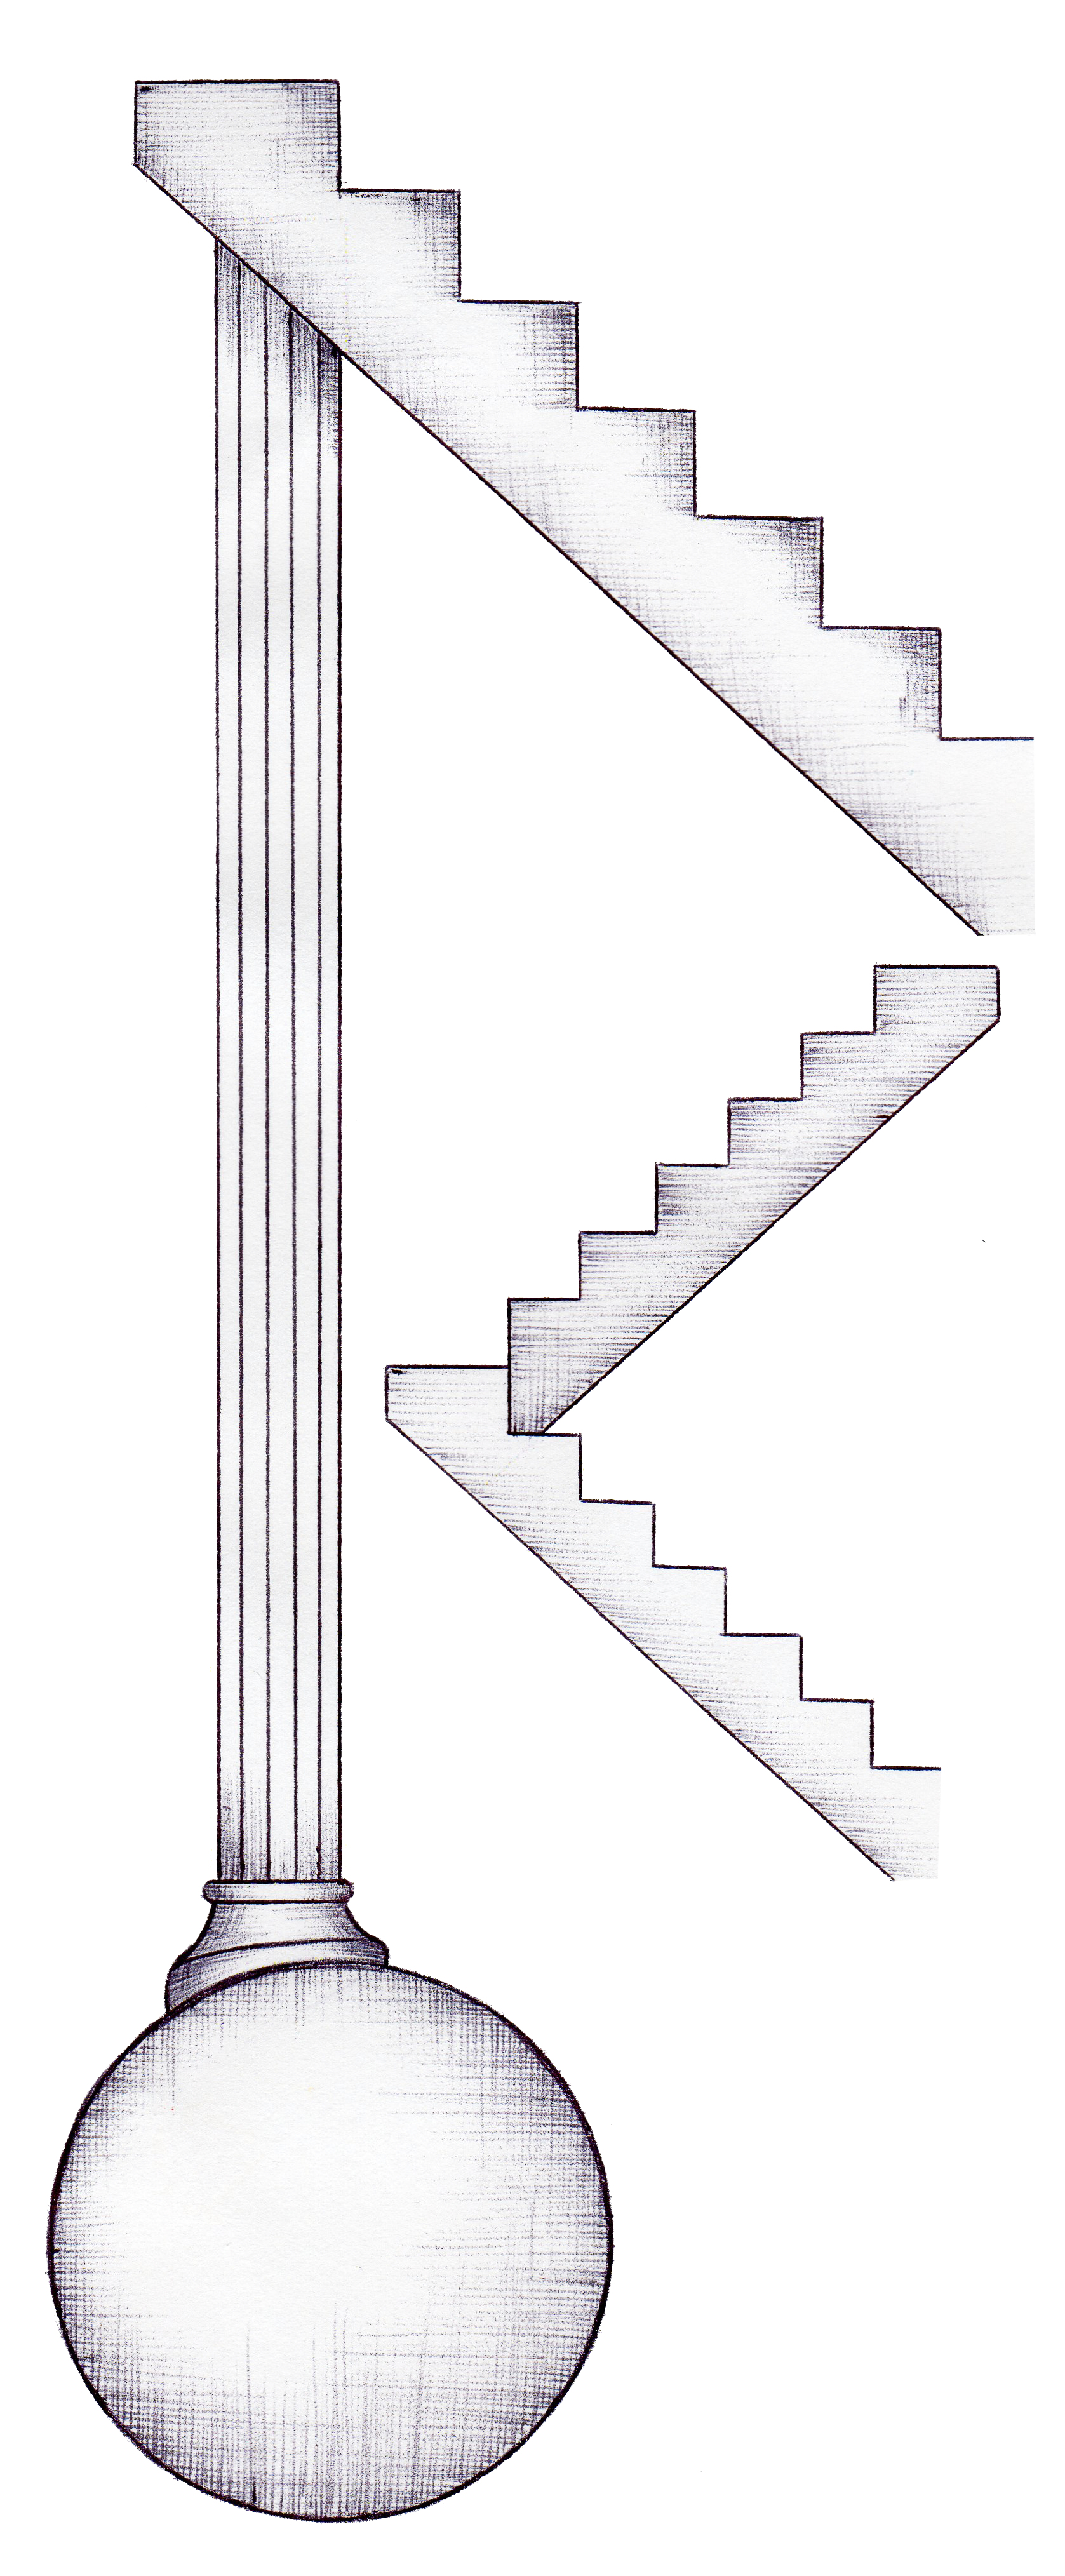 柱球体階段(HPパーツ) Pillar , sphere , stairs(HP parts)